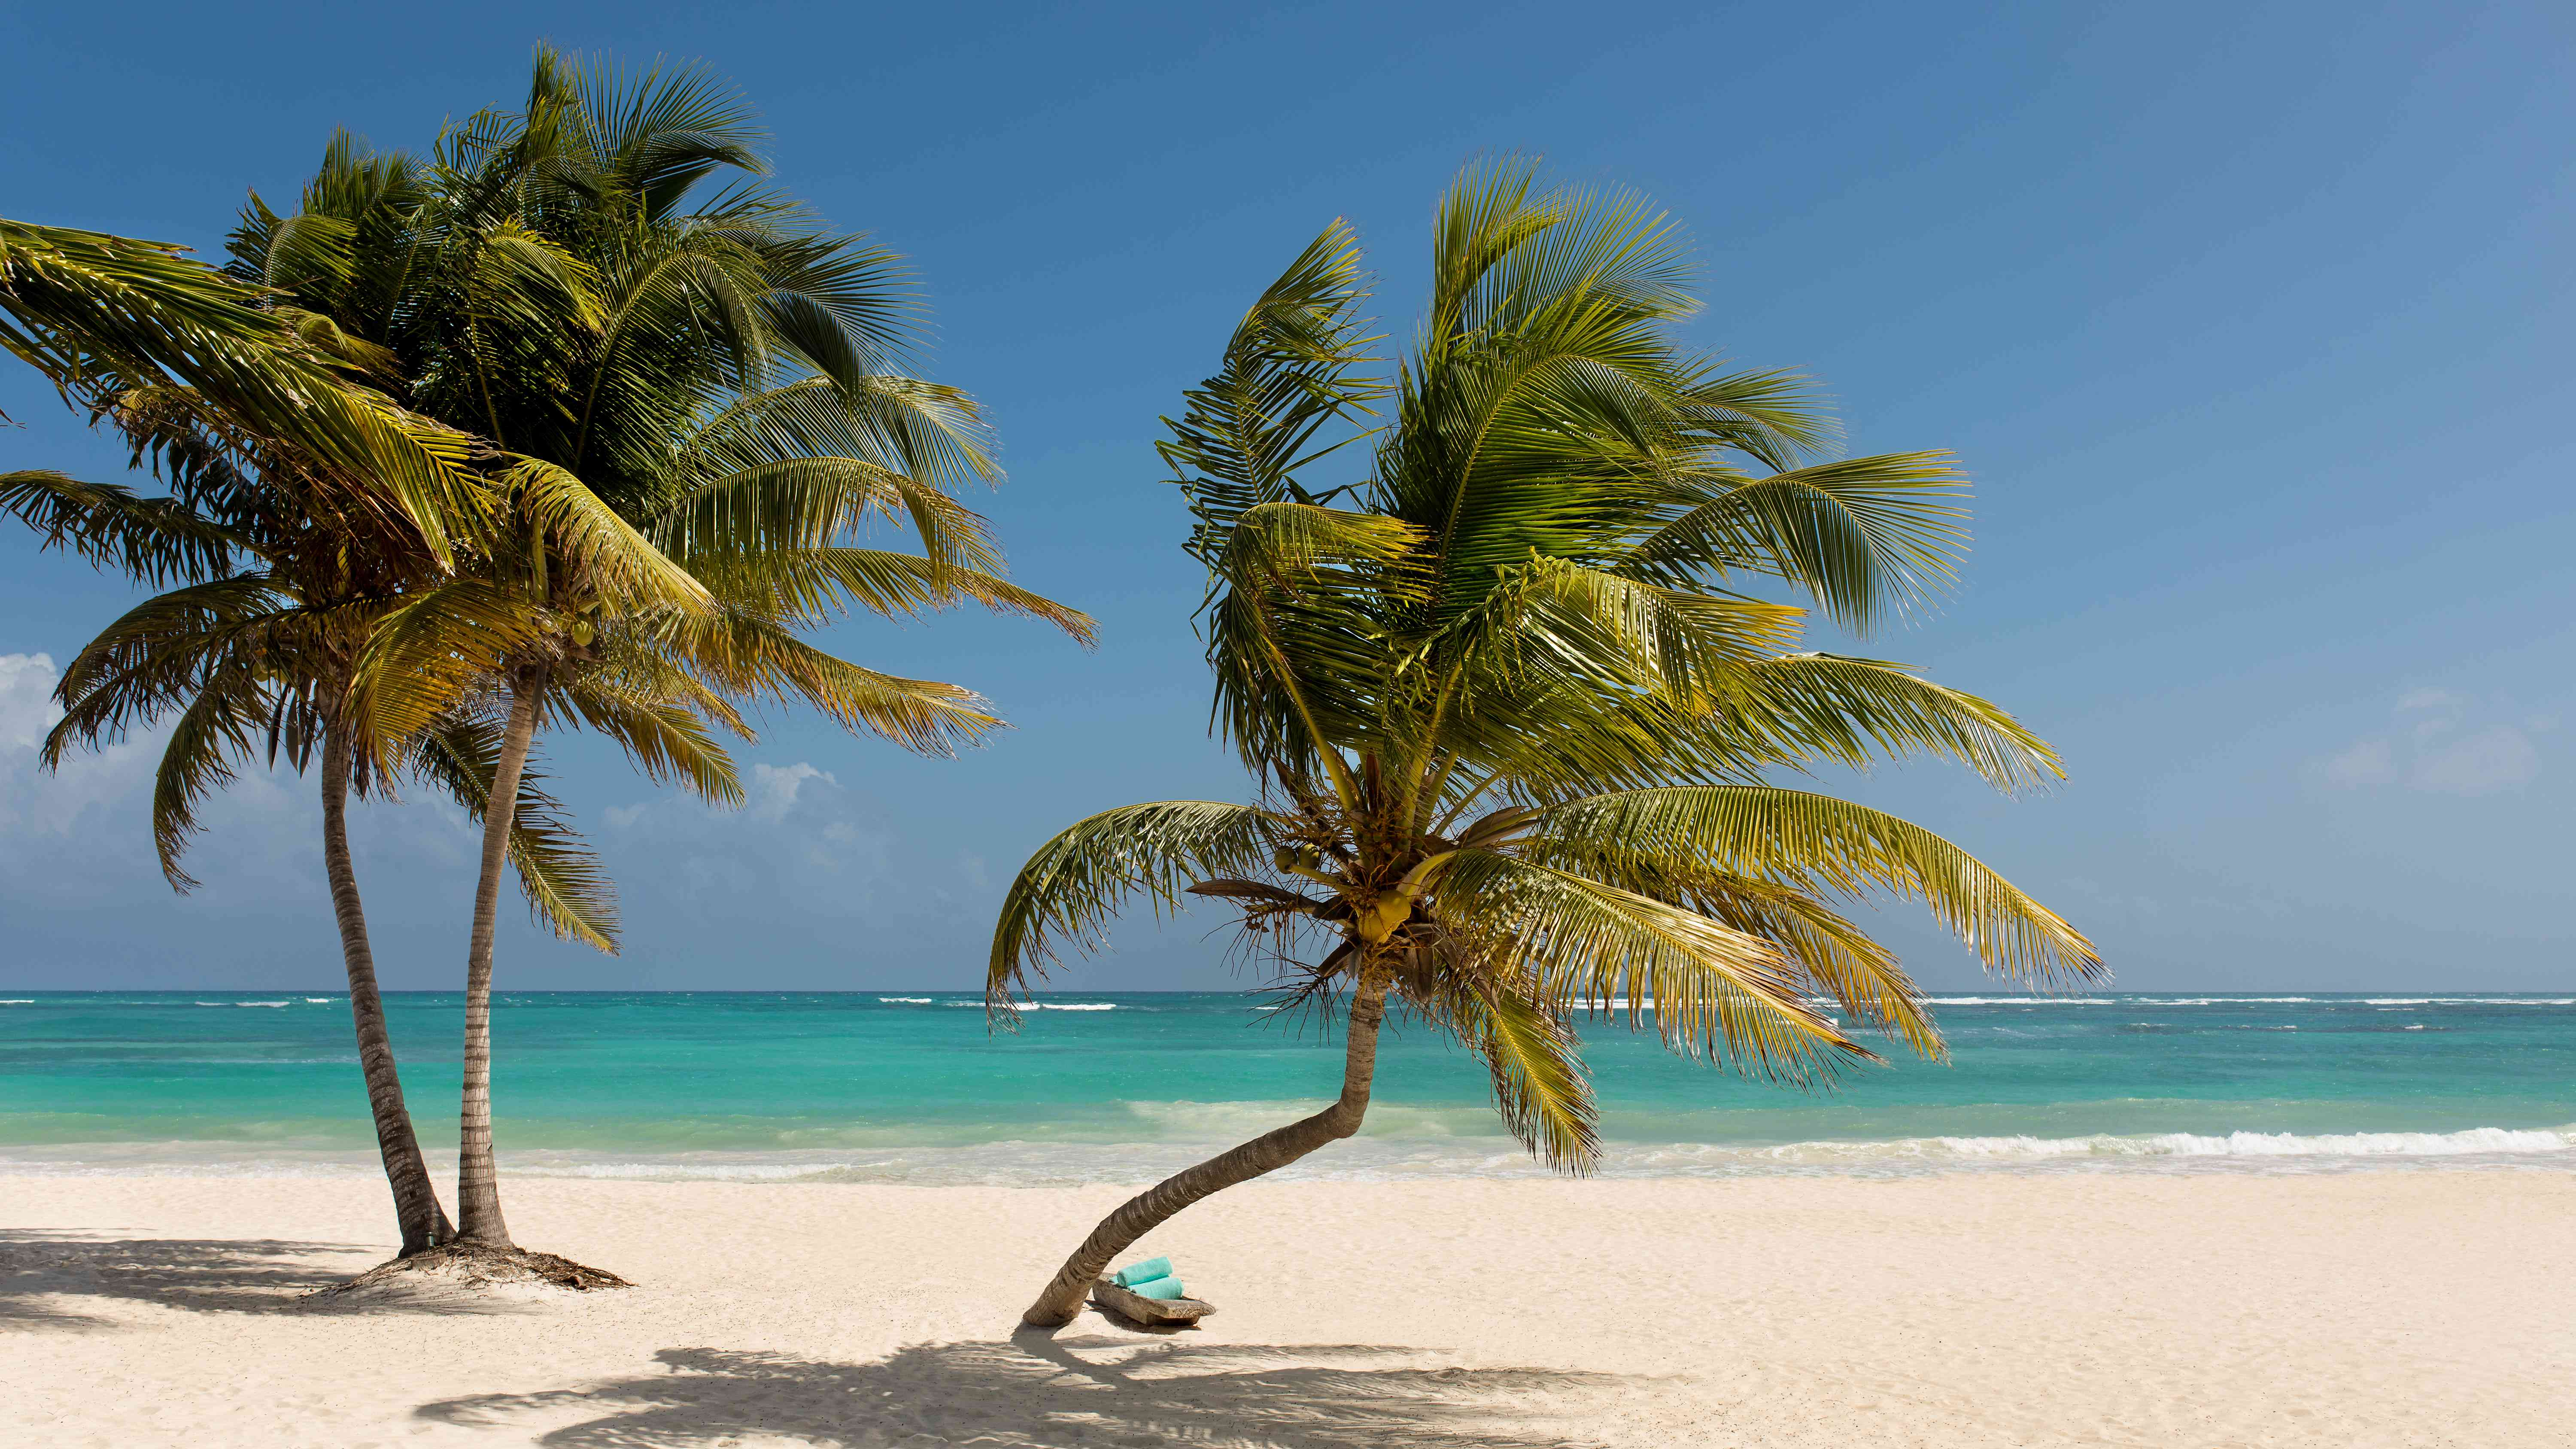 Two palm trees on a beach